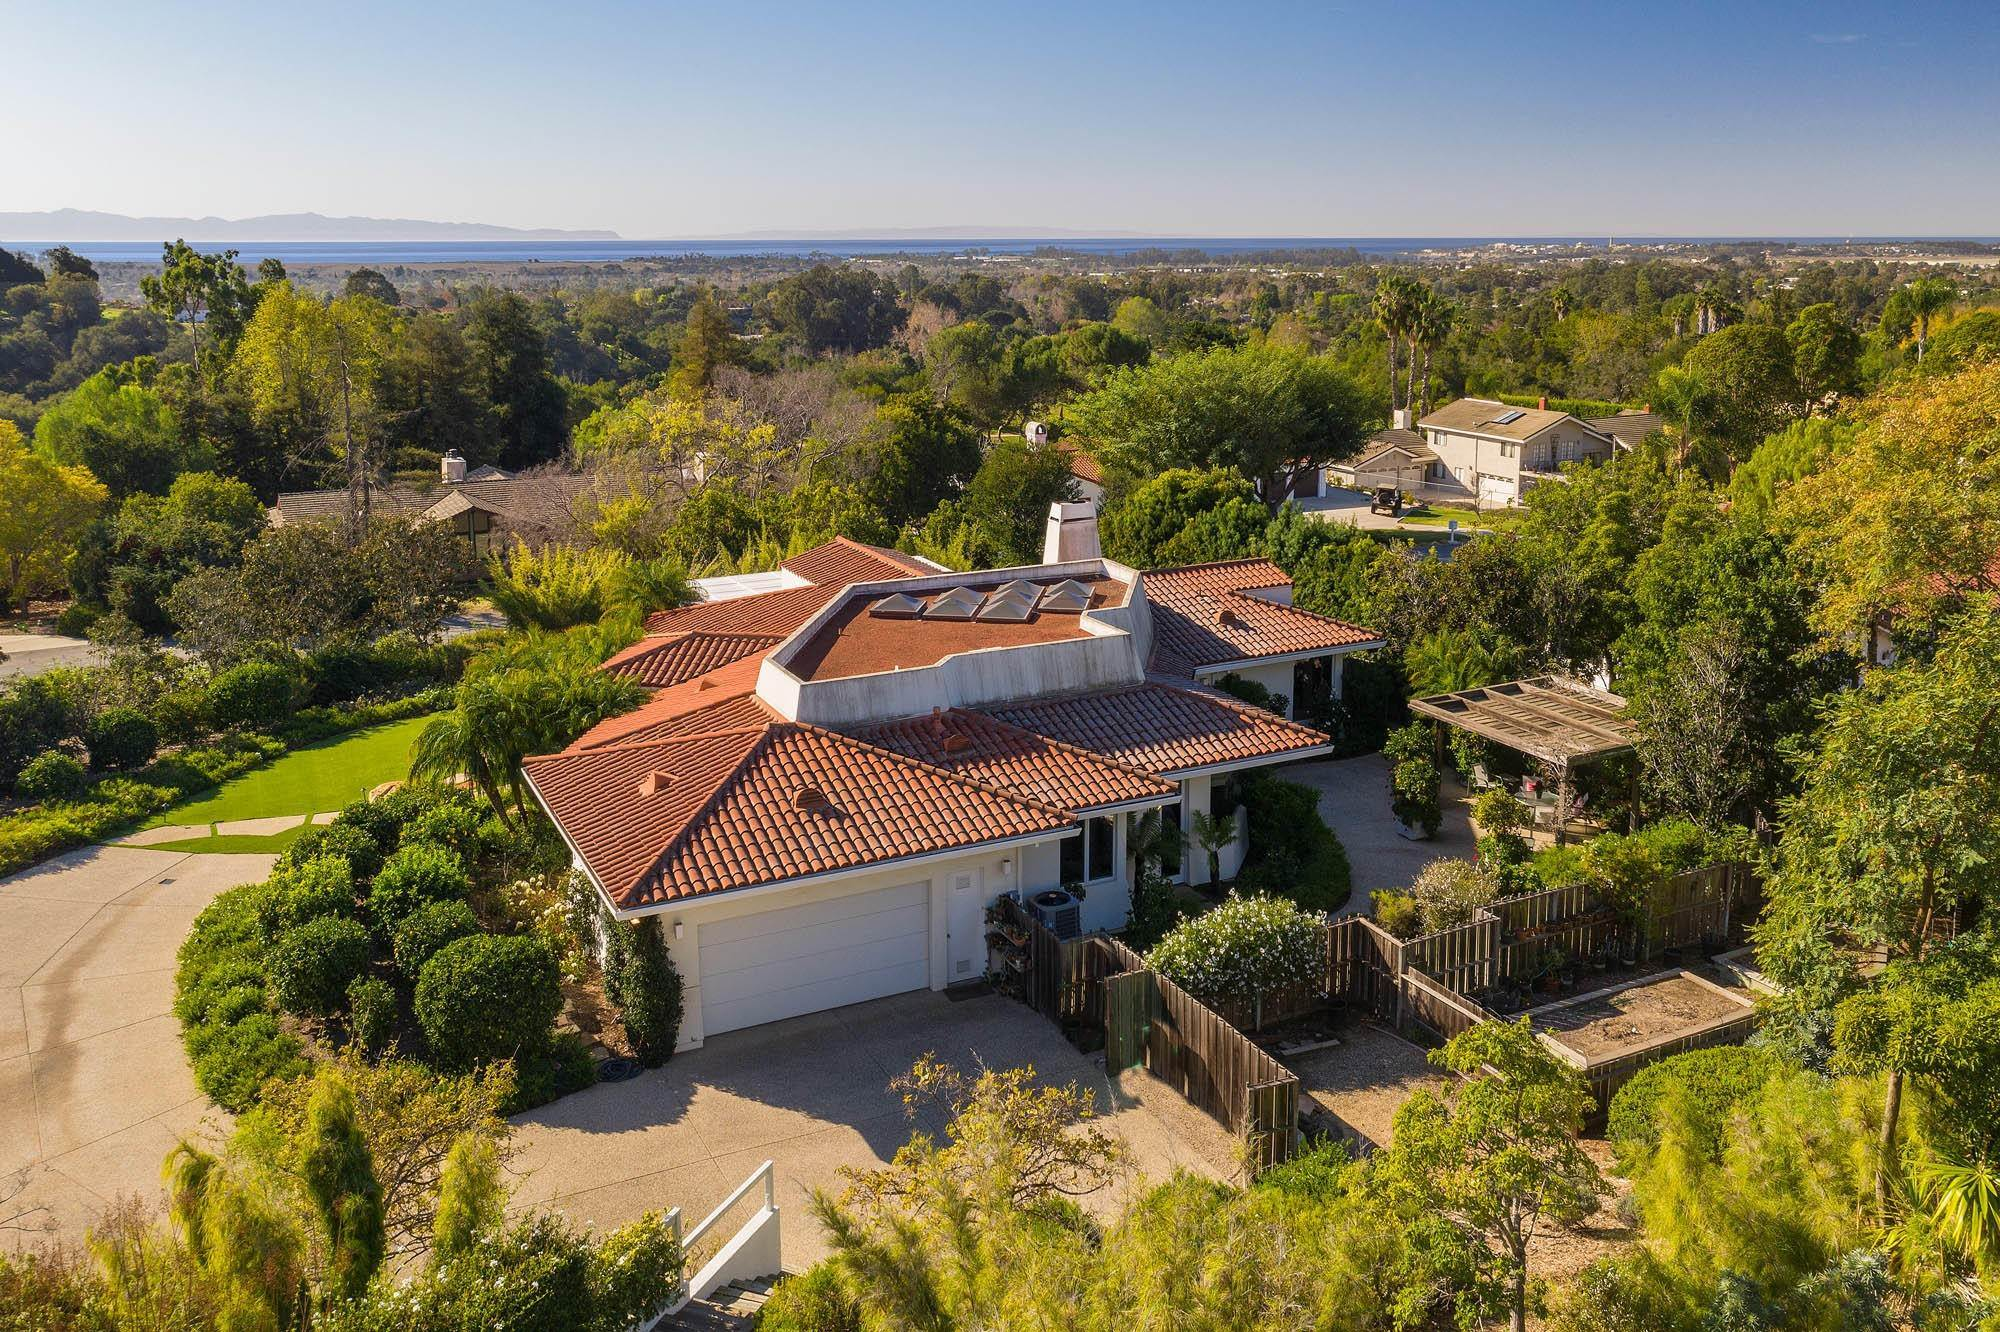 12. Estate for Sale at 957 Via Los Padres Santa Barbara, California 93111 United States